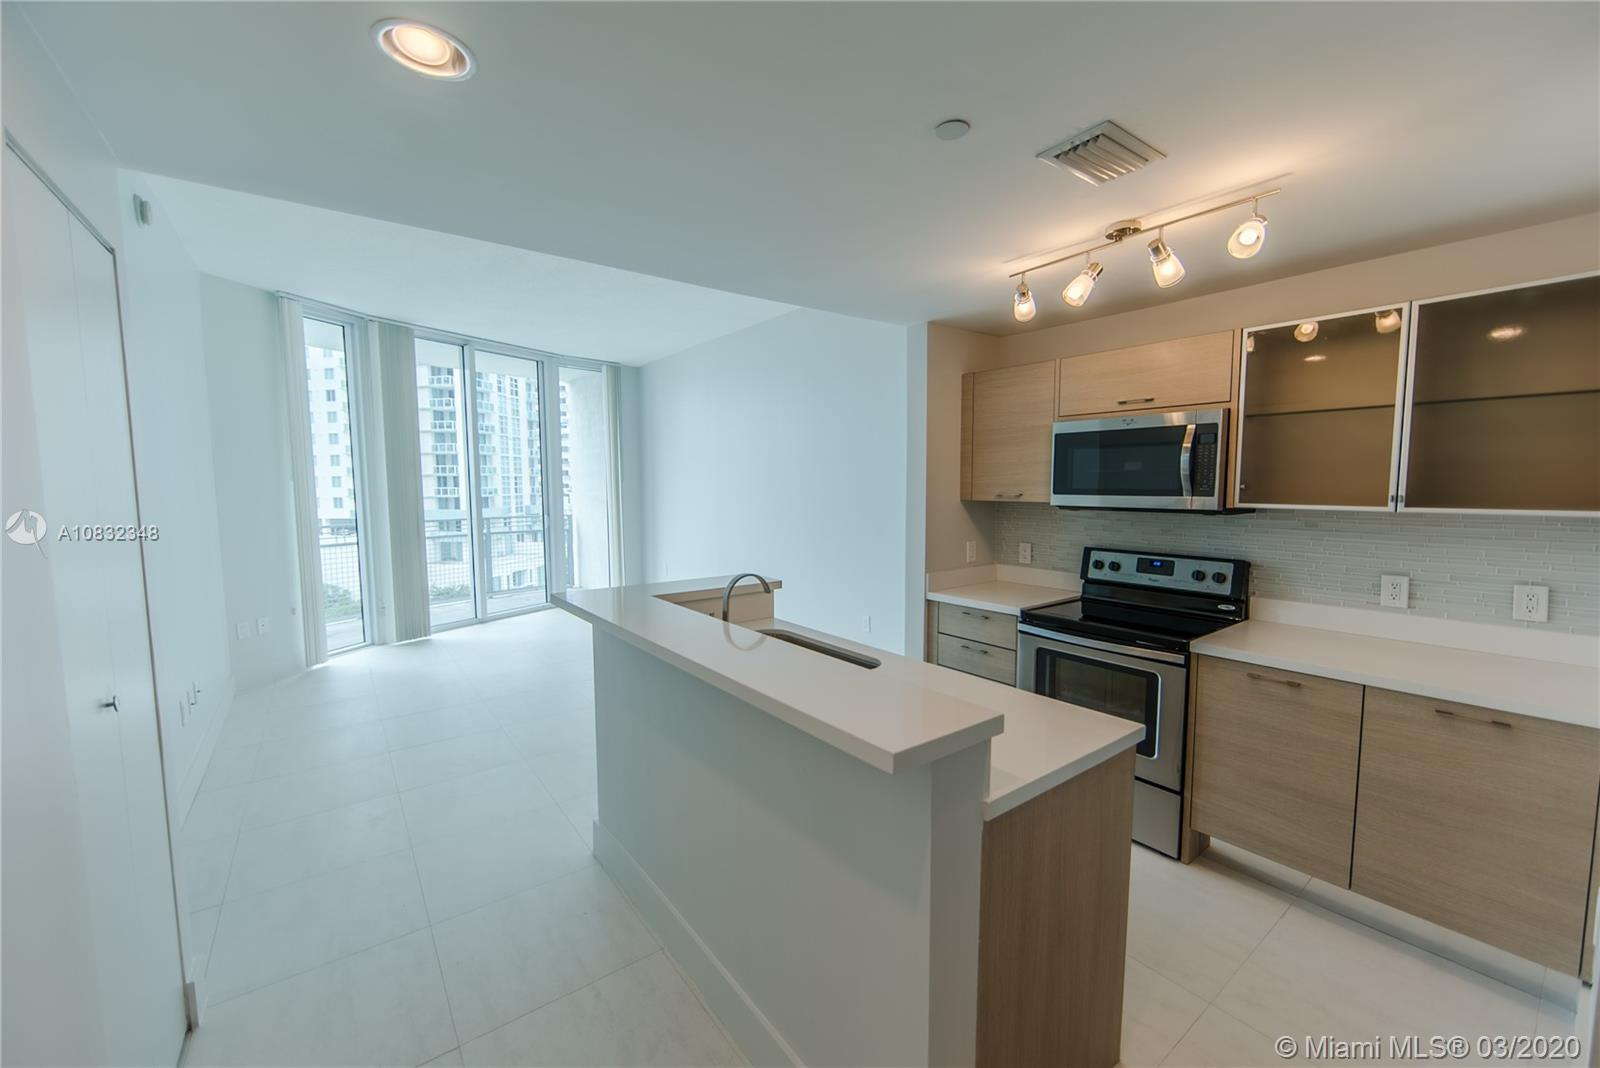 Live in the middle of it all! This 2 bedroom 2 bath unit is ready to move. Building amenities includ